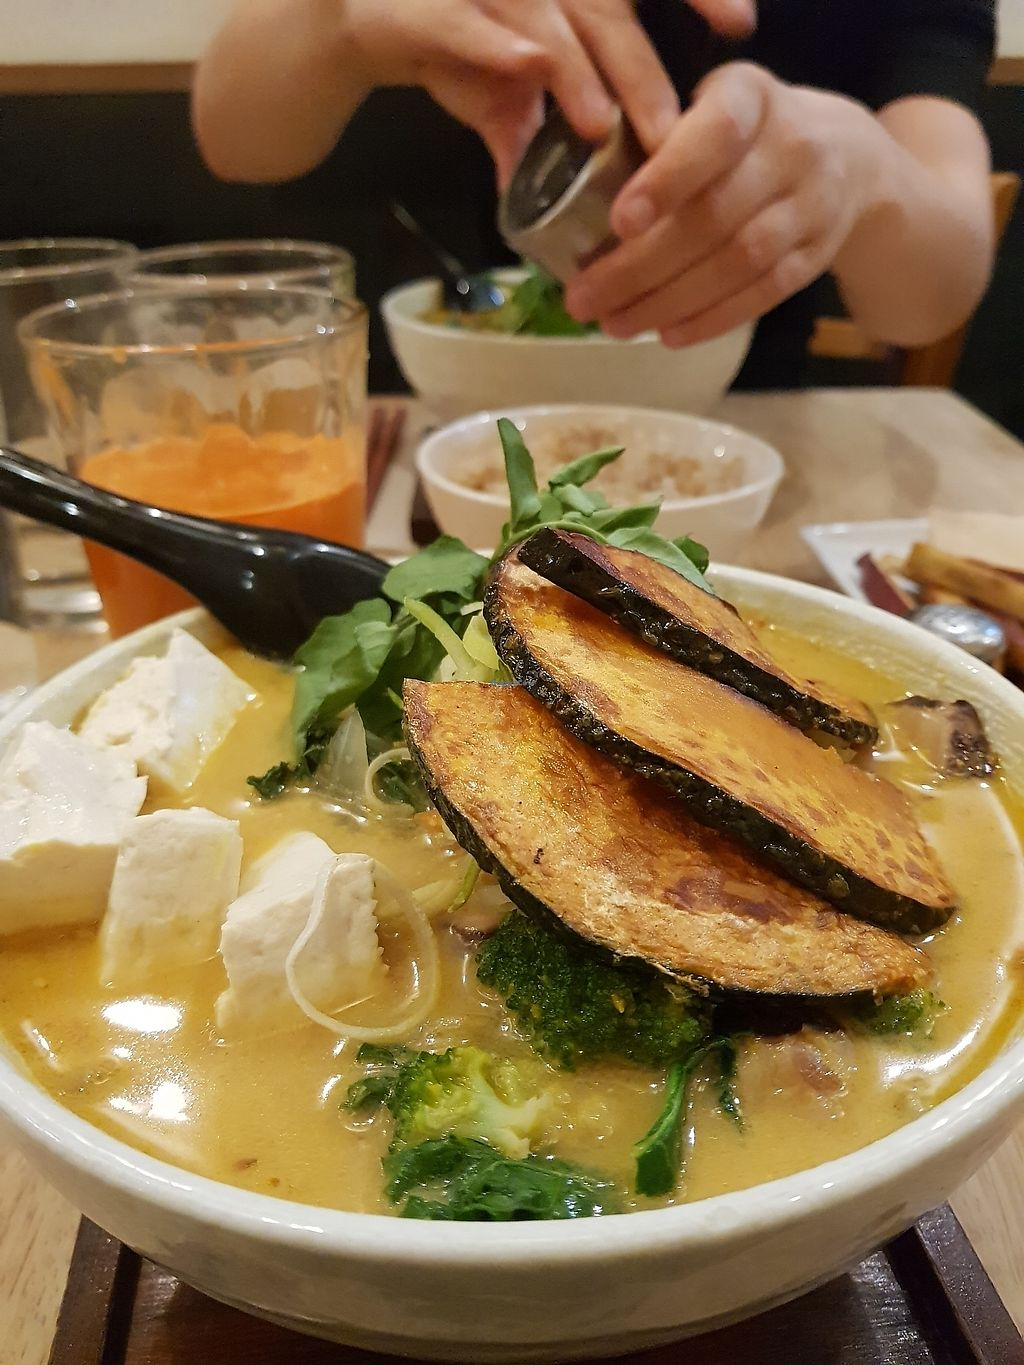 """Photo of Souen - East Village  by <a href=""""/members/profile/Zhenli"""">Zhenli</a> <br/>ramen <br/> August 8, 2017  - <a href='/contact/abuse/image/17617/290484'>Report</a>"""